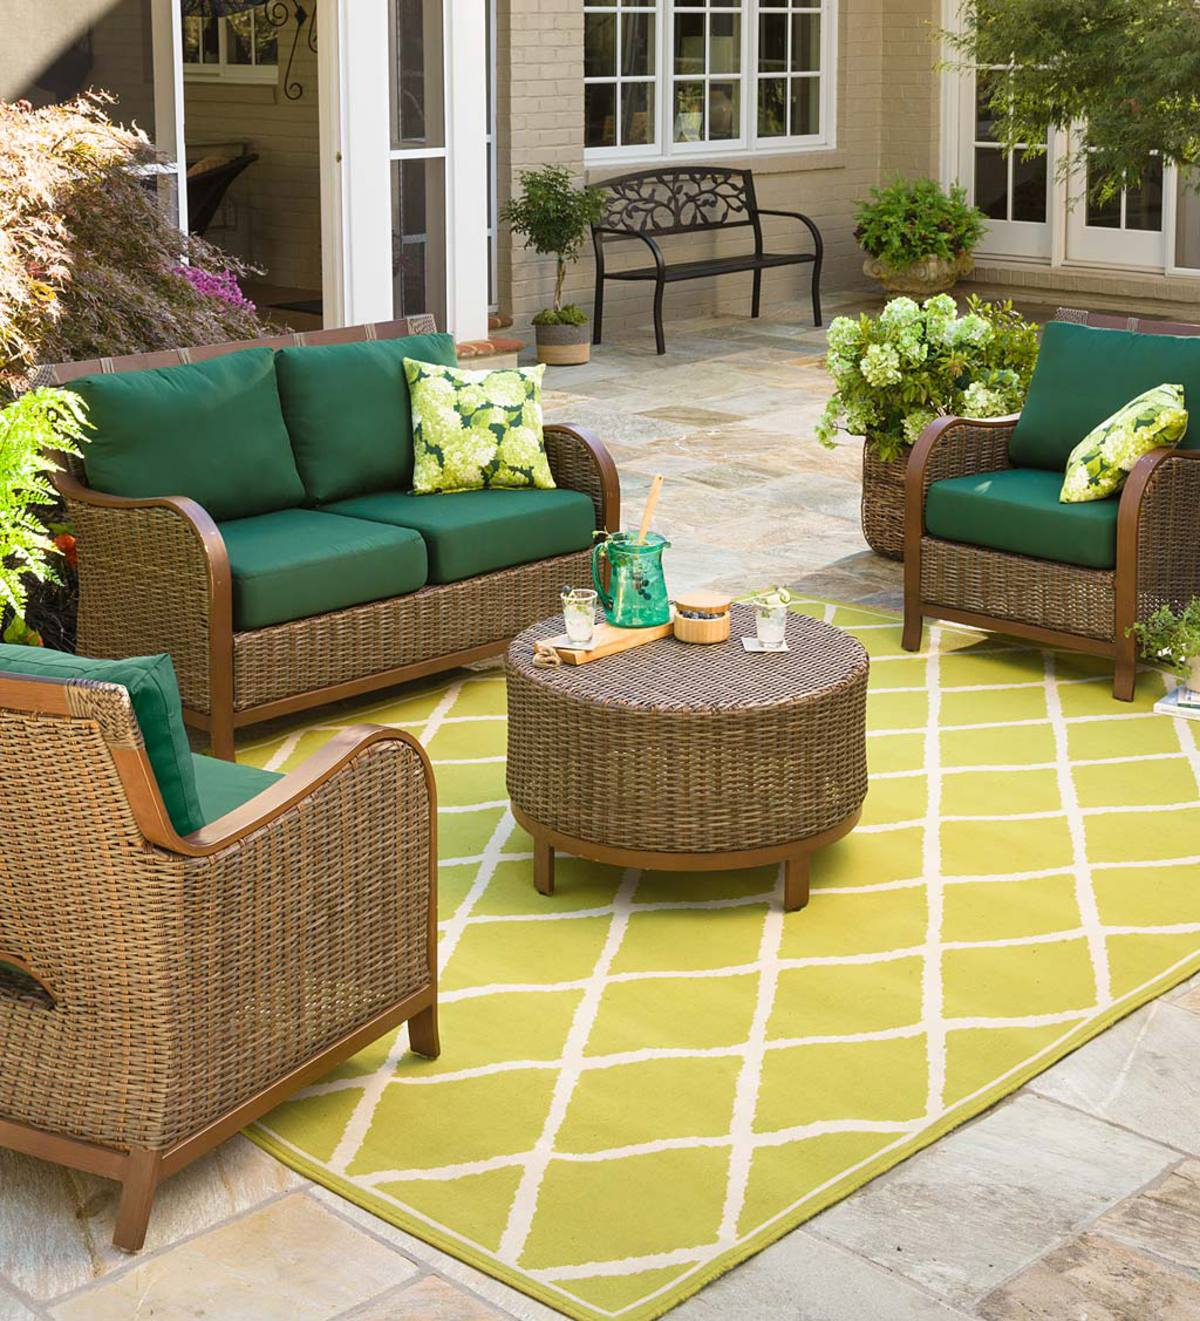 Urbanna Premium Wicker Four Piece Set with Luxury Cushions - Forest Green